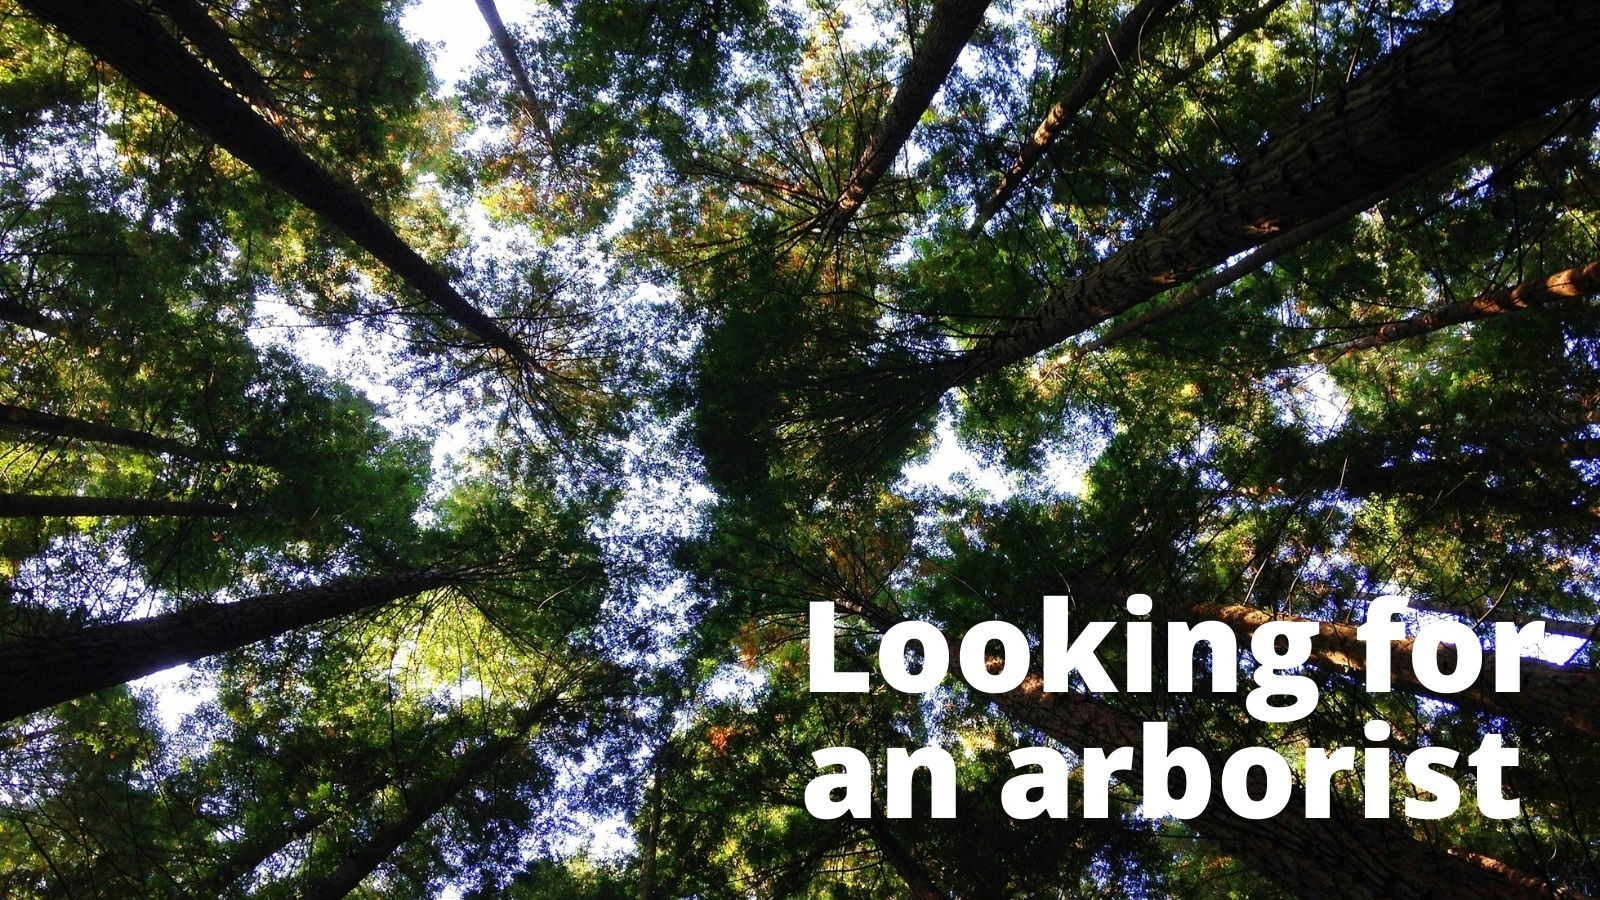 Looking for an arborist in tree tops